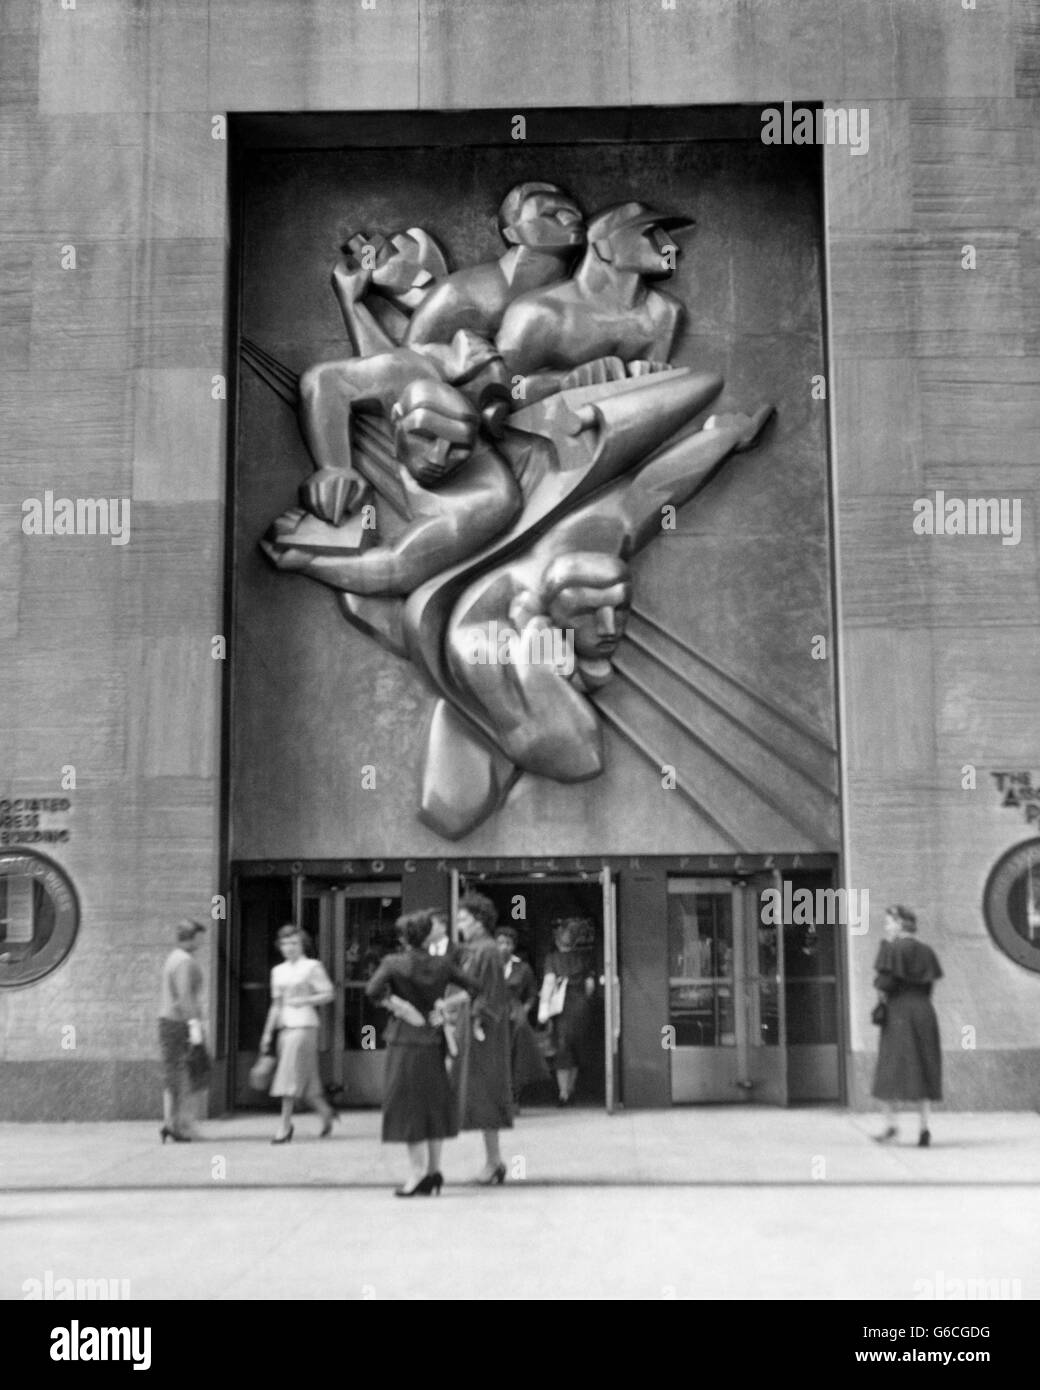 1940s 1950s ROCKEFELLER CENTER ART DECO BAS RELIEF NEWS BY ISAMU NOGUCHI OVER ASSOCIATED PRESS BUILDING NEW YORK - Stock Image